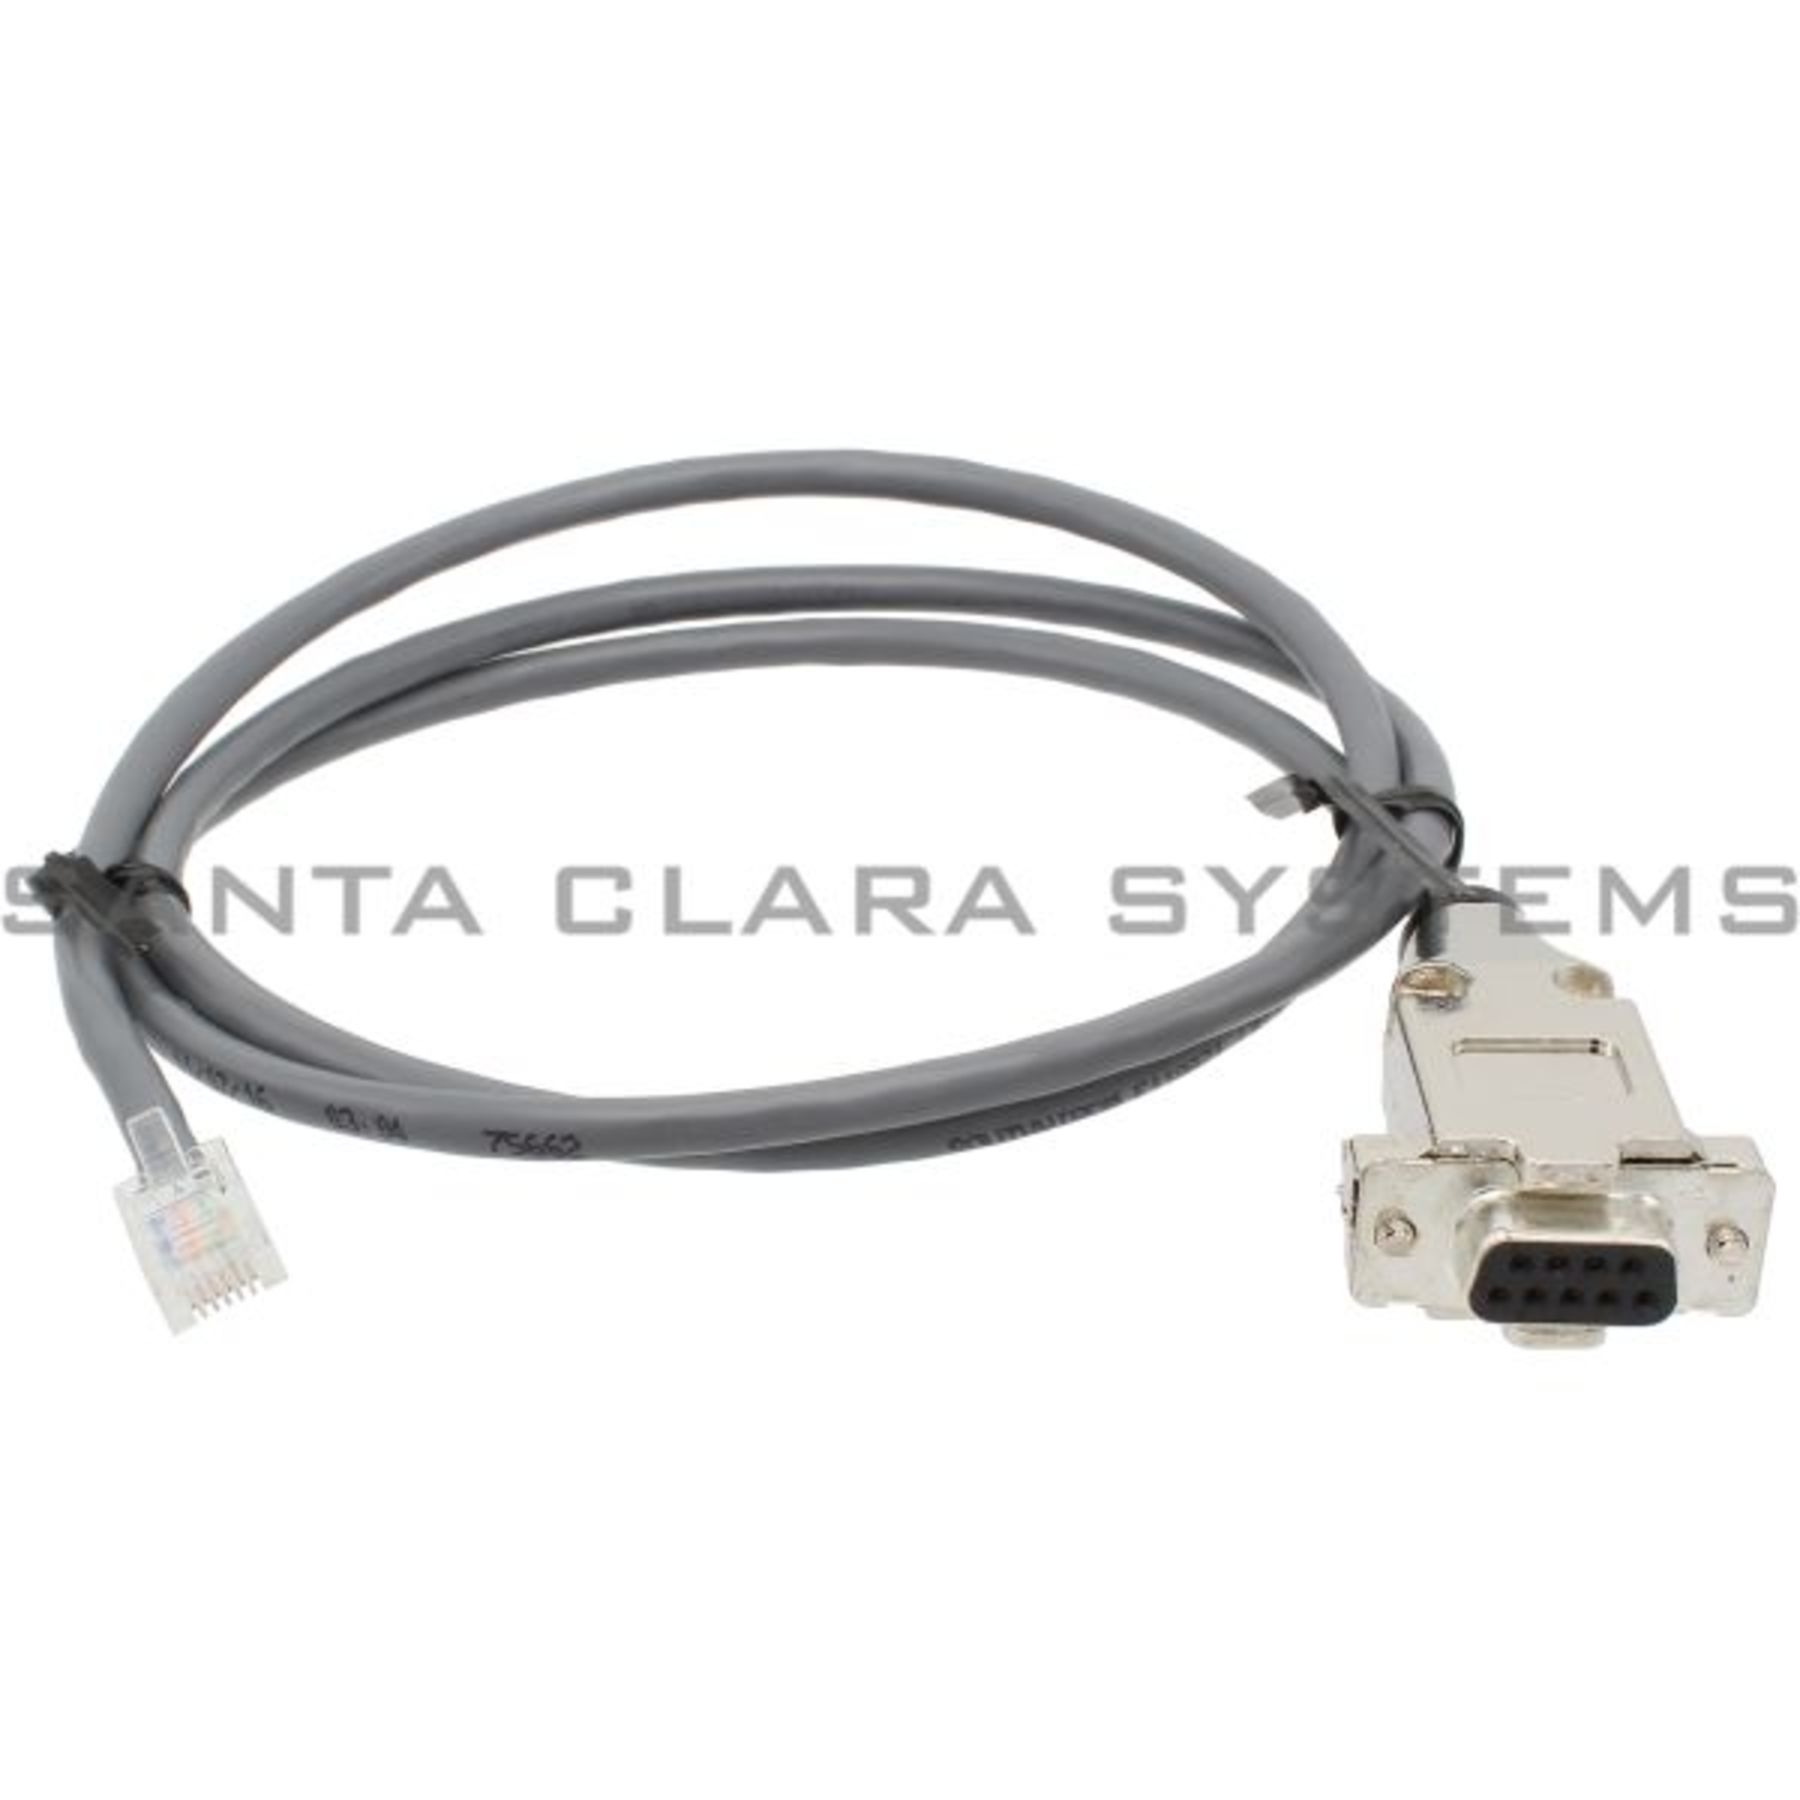 IC693CBL316 Station Manager Serial Cable for Ethernet TCP/IP In